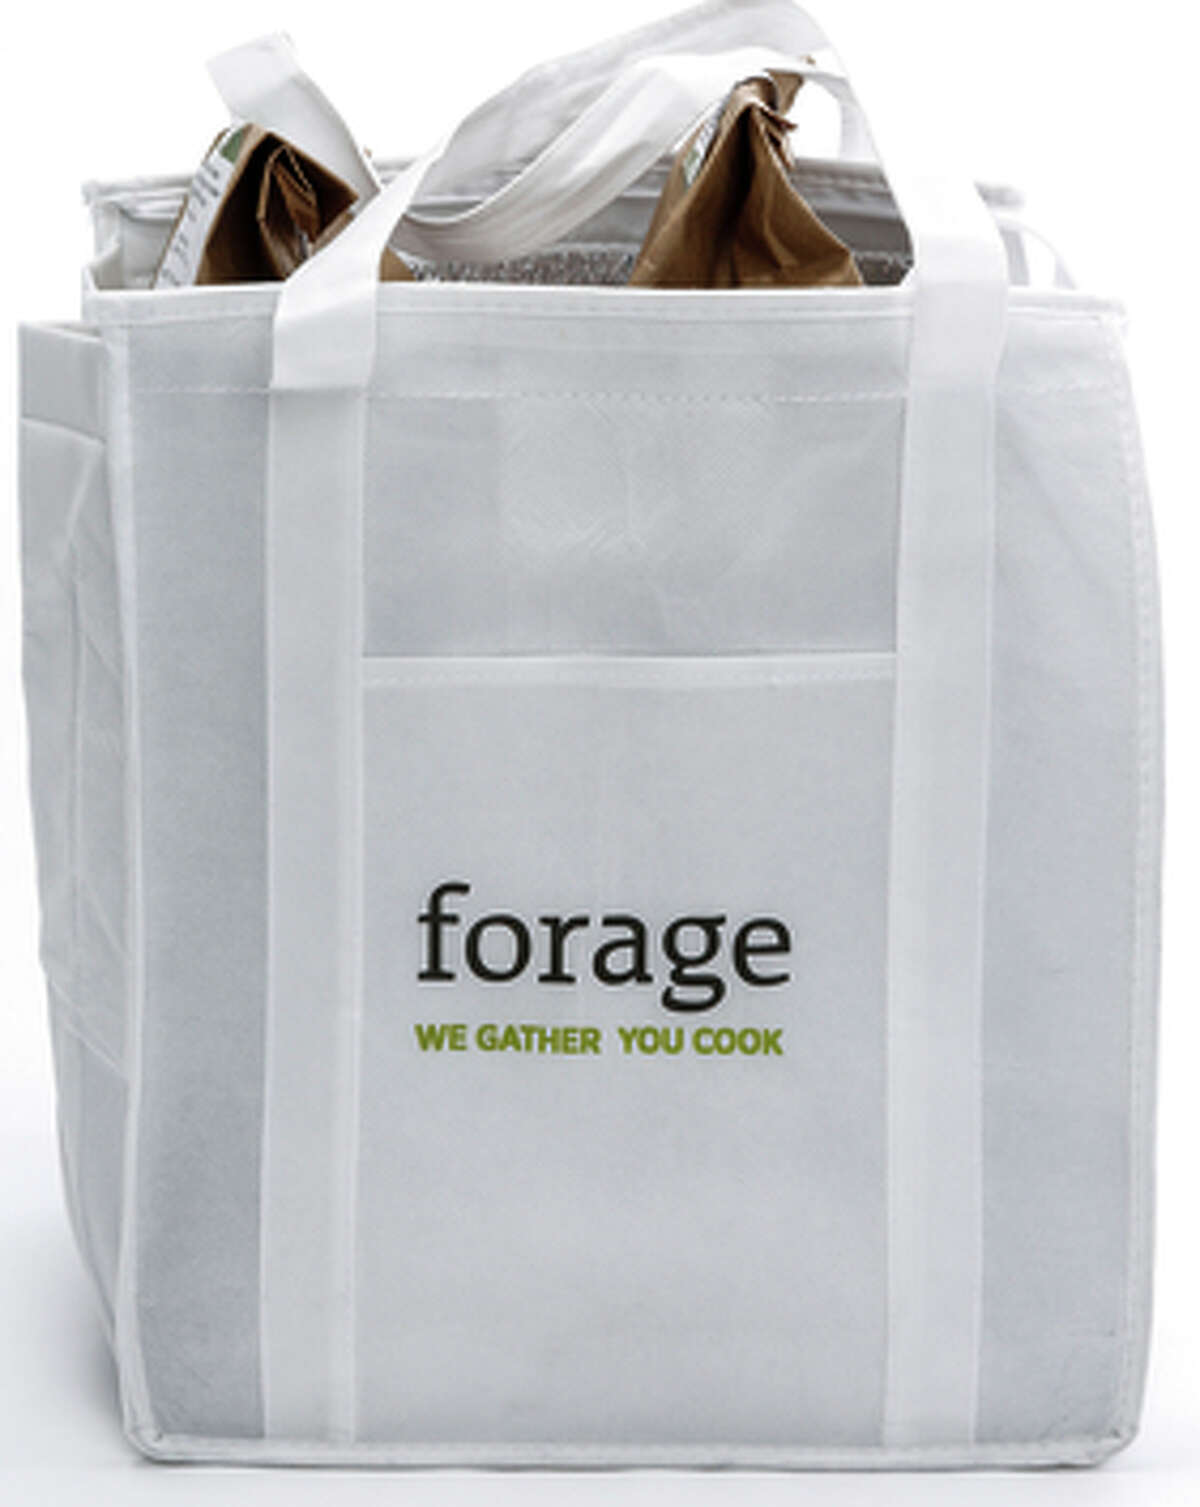 A meal kit from Forage containing a recipe for Beet Fettuccini, Shiitake, Snowpeas, Dandelion, and Ginger-Arugula Pesto.